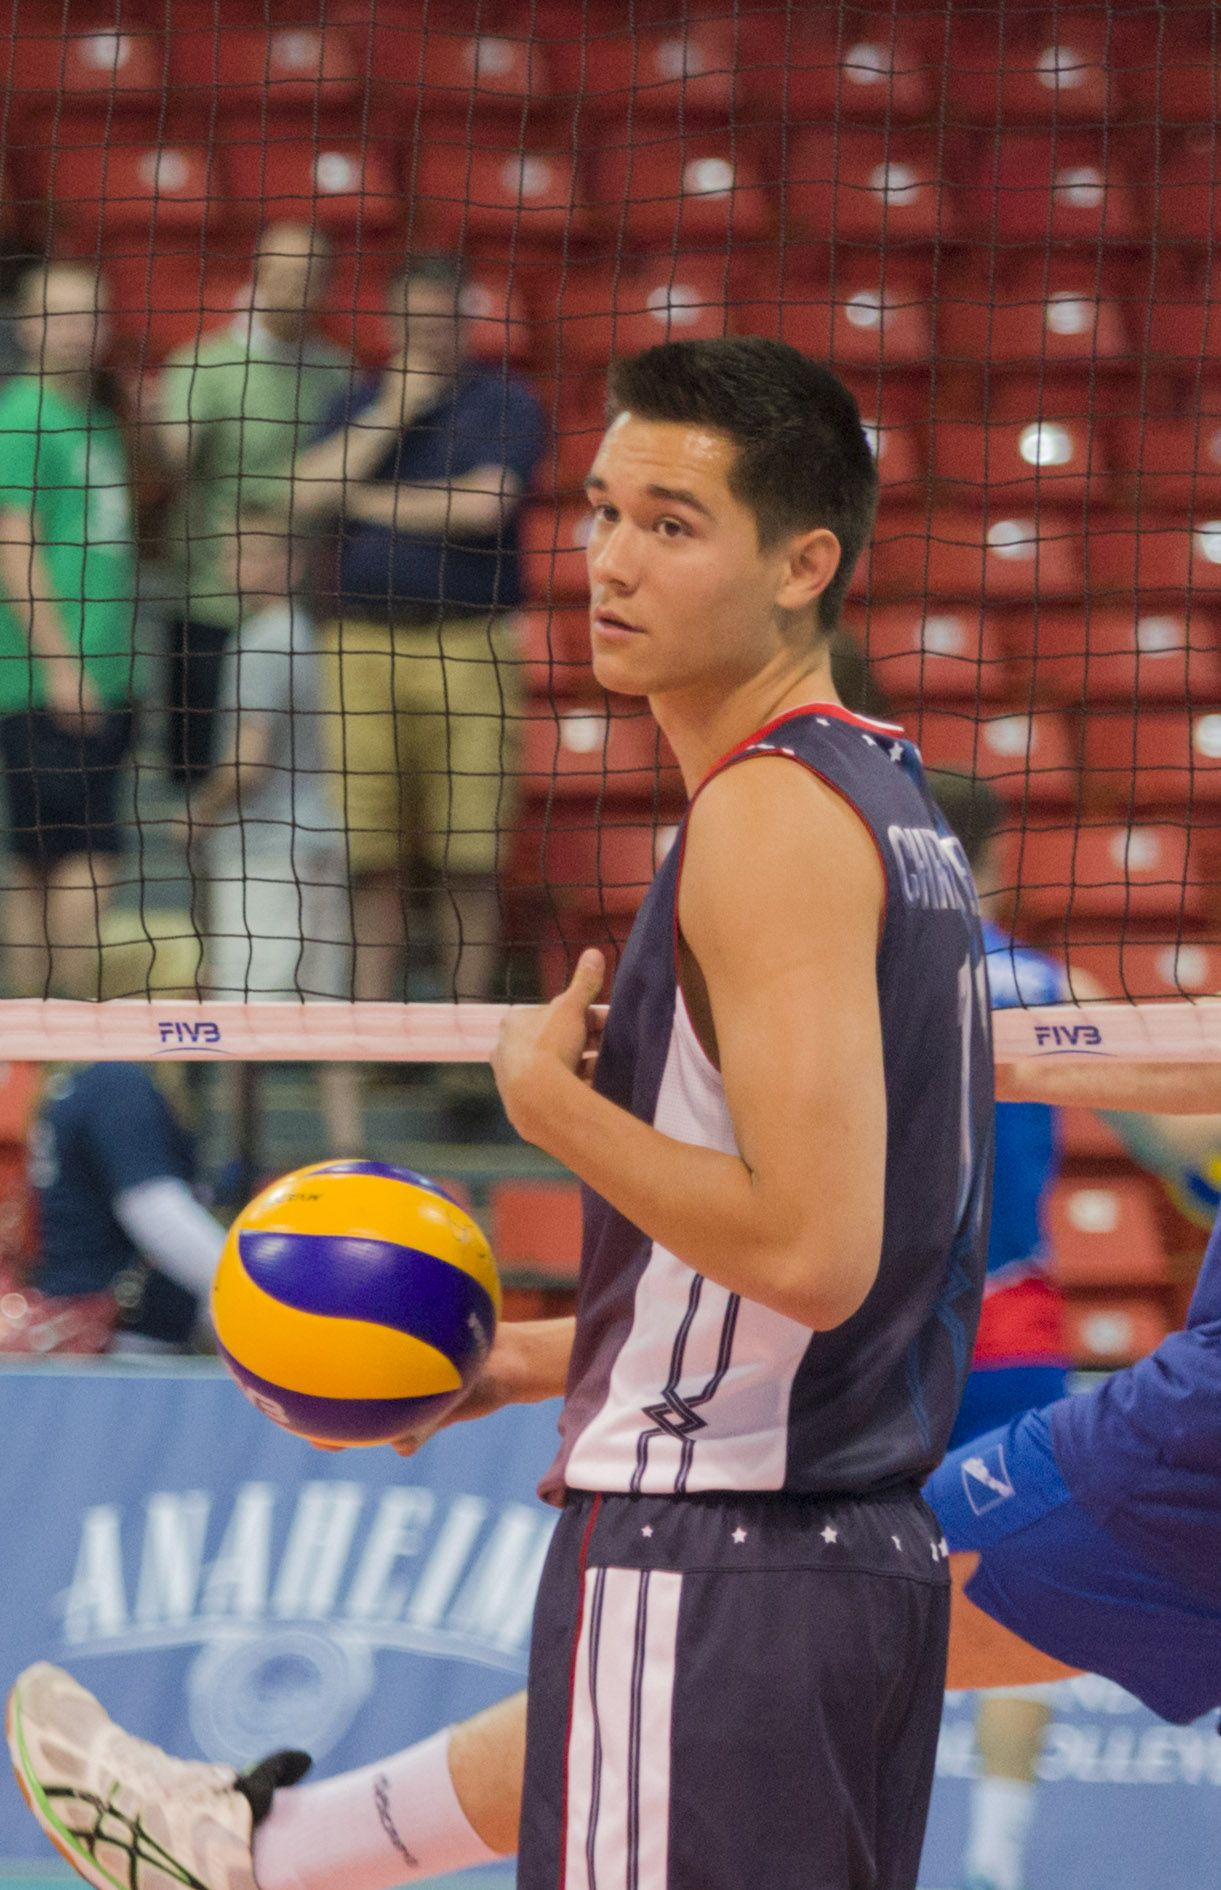 Micah Christenson Usa Volleyball Setter 3 Jpg 1221 1890 Usa Volleyball Team Mens Volleyball Volleyball Workouts